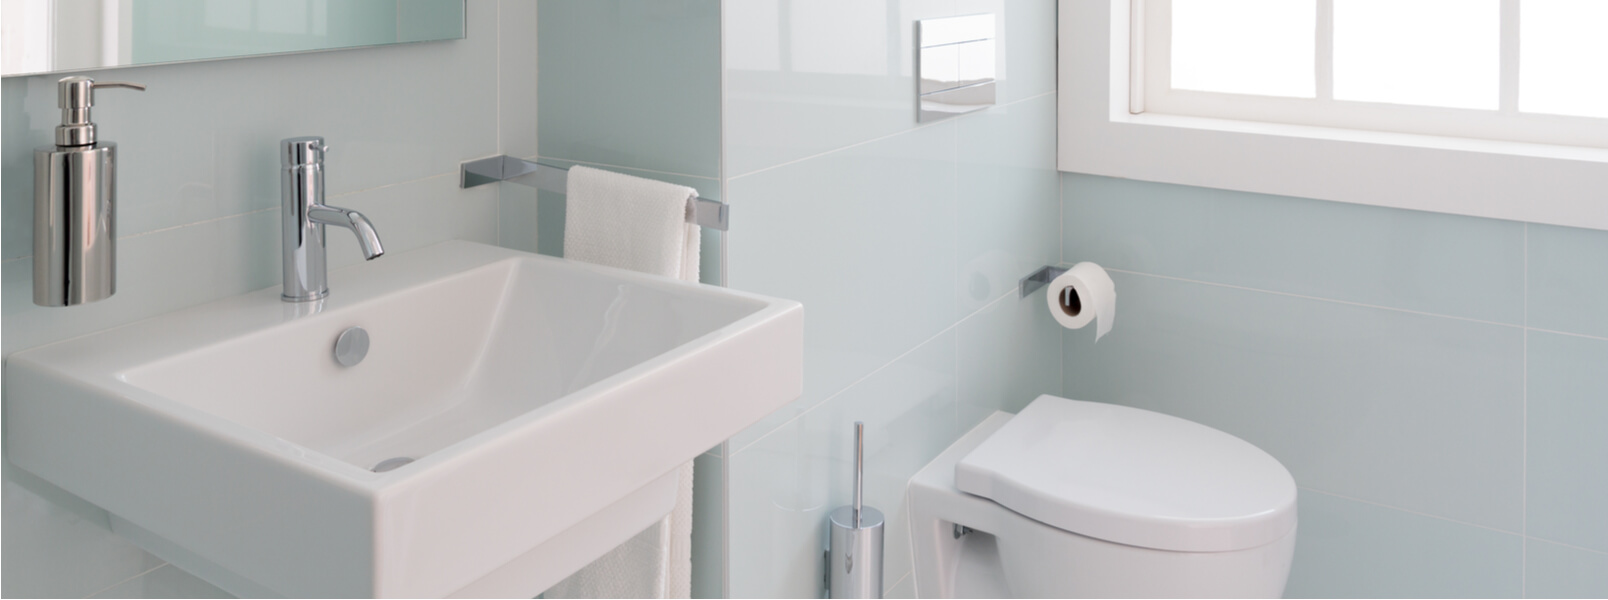 How to Make the Most of Your Small Bathroom